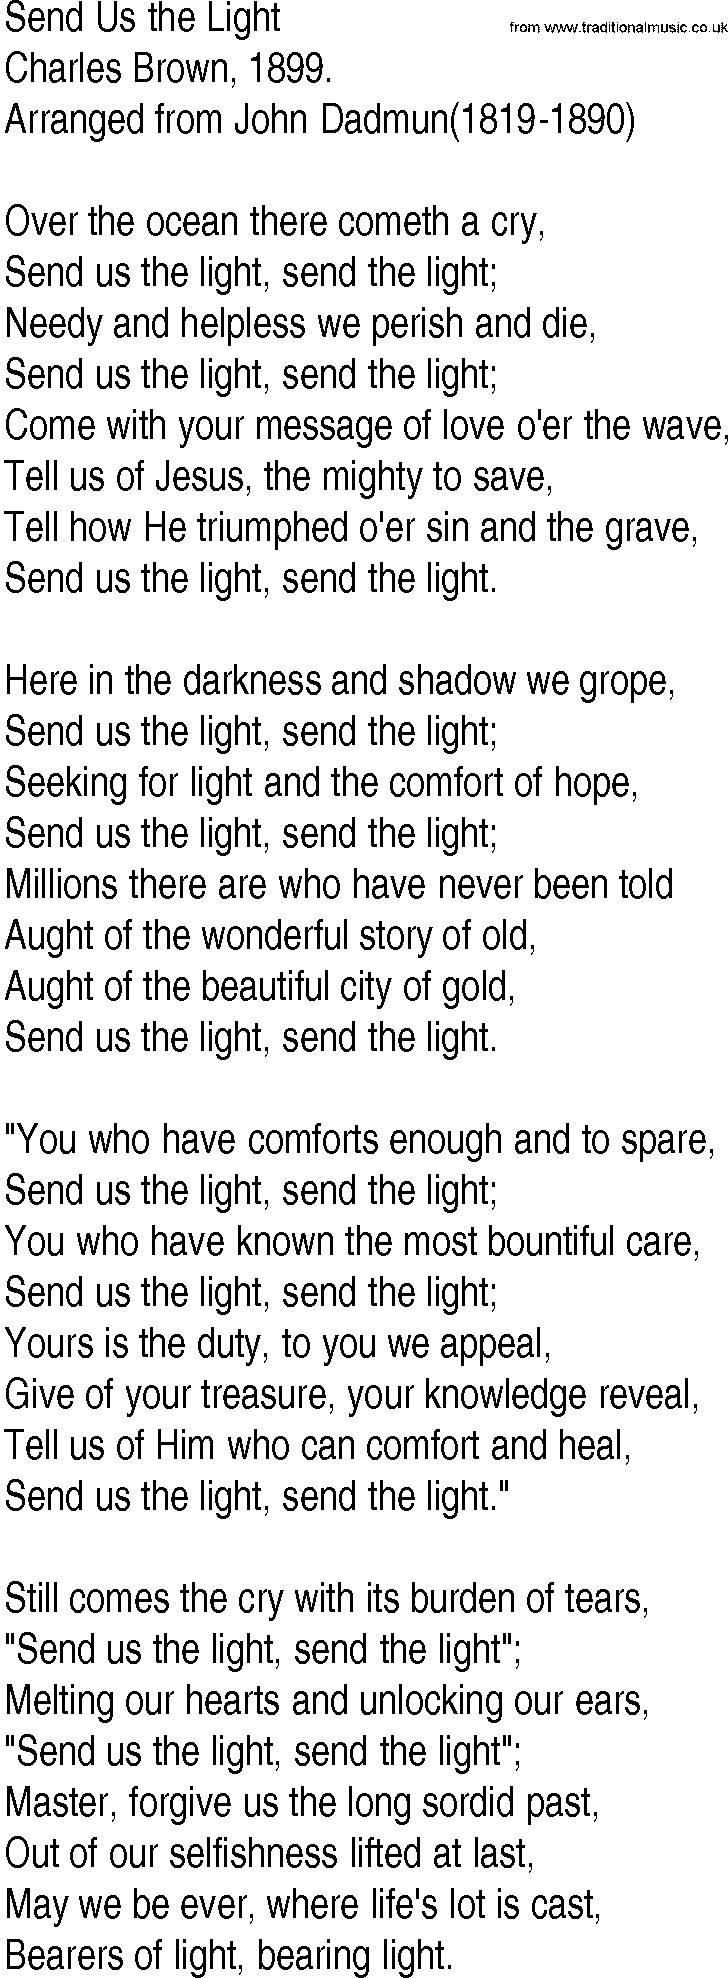 Hymn and Gospel Song Lyrics for Send Us the Light by Charles Brown